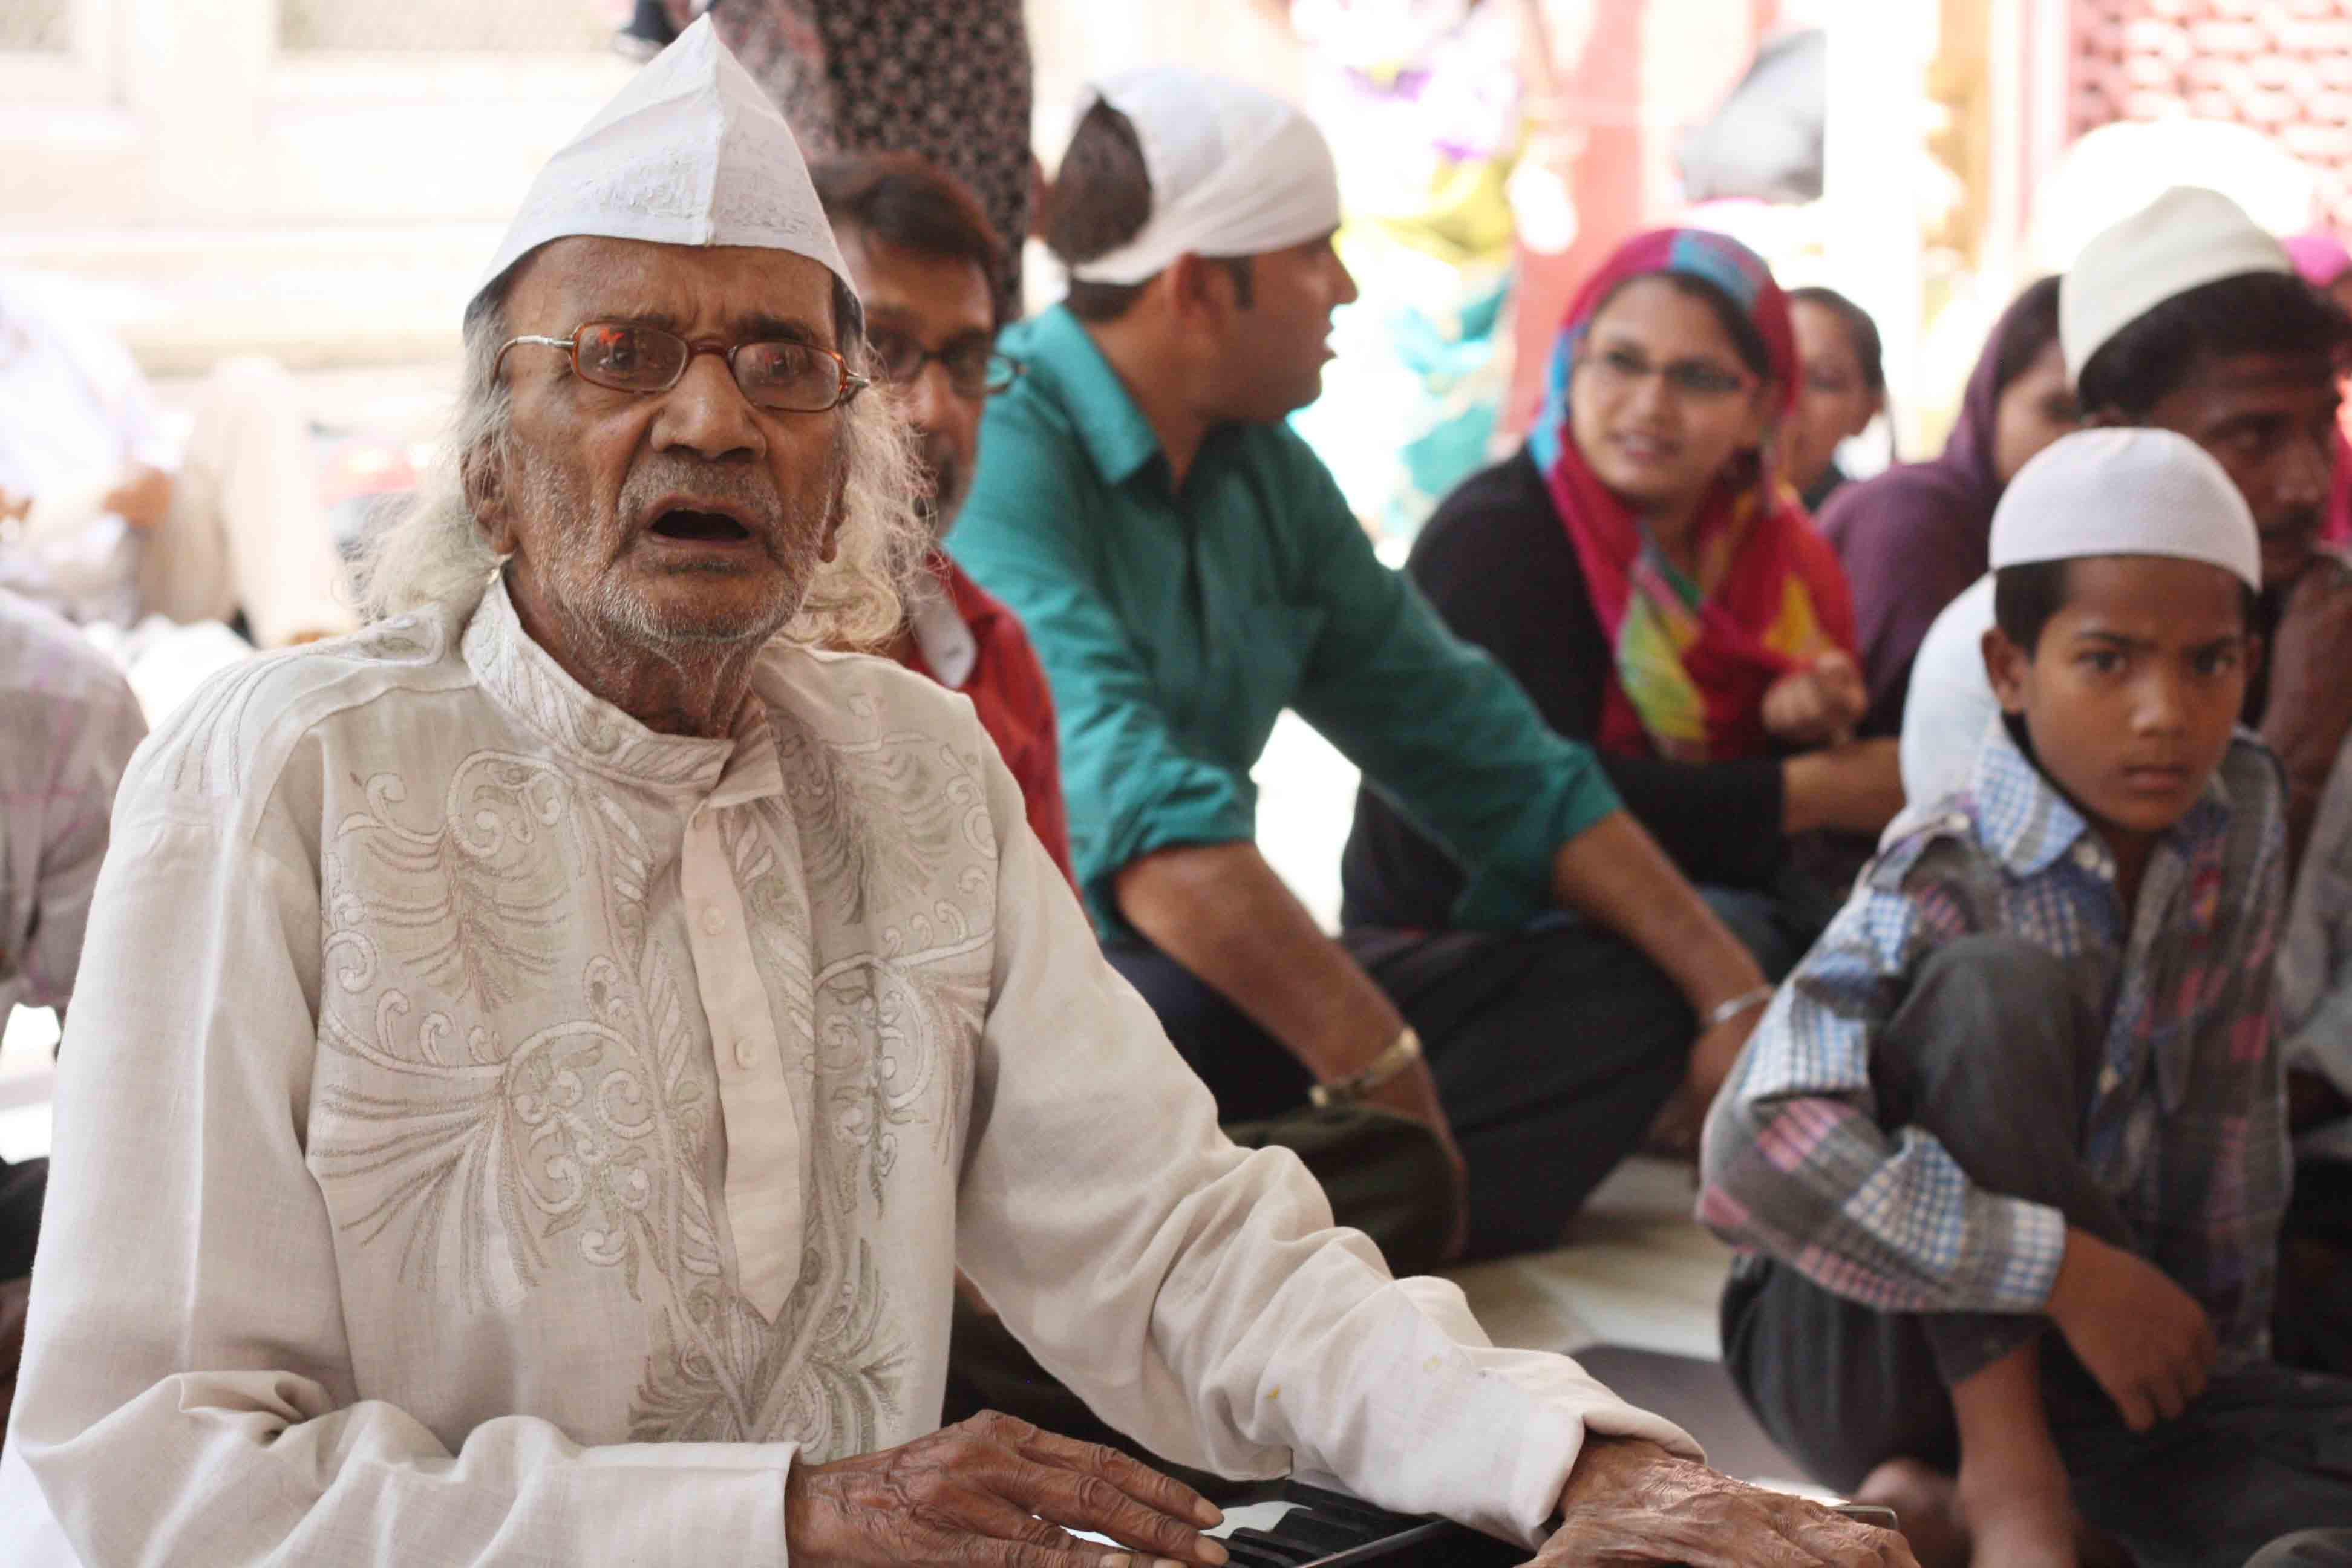 City Moment – The Last Great Qawwal, Hazrat Nizamuddin's Dargah